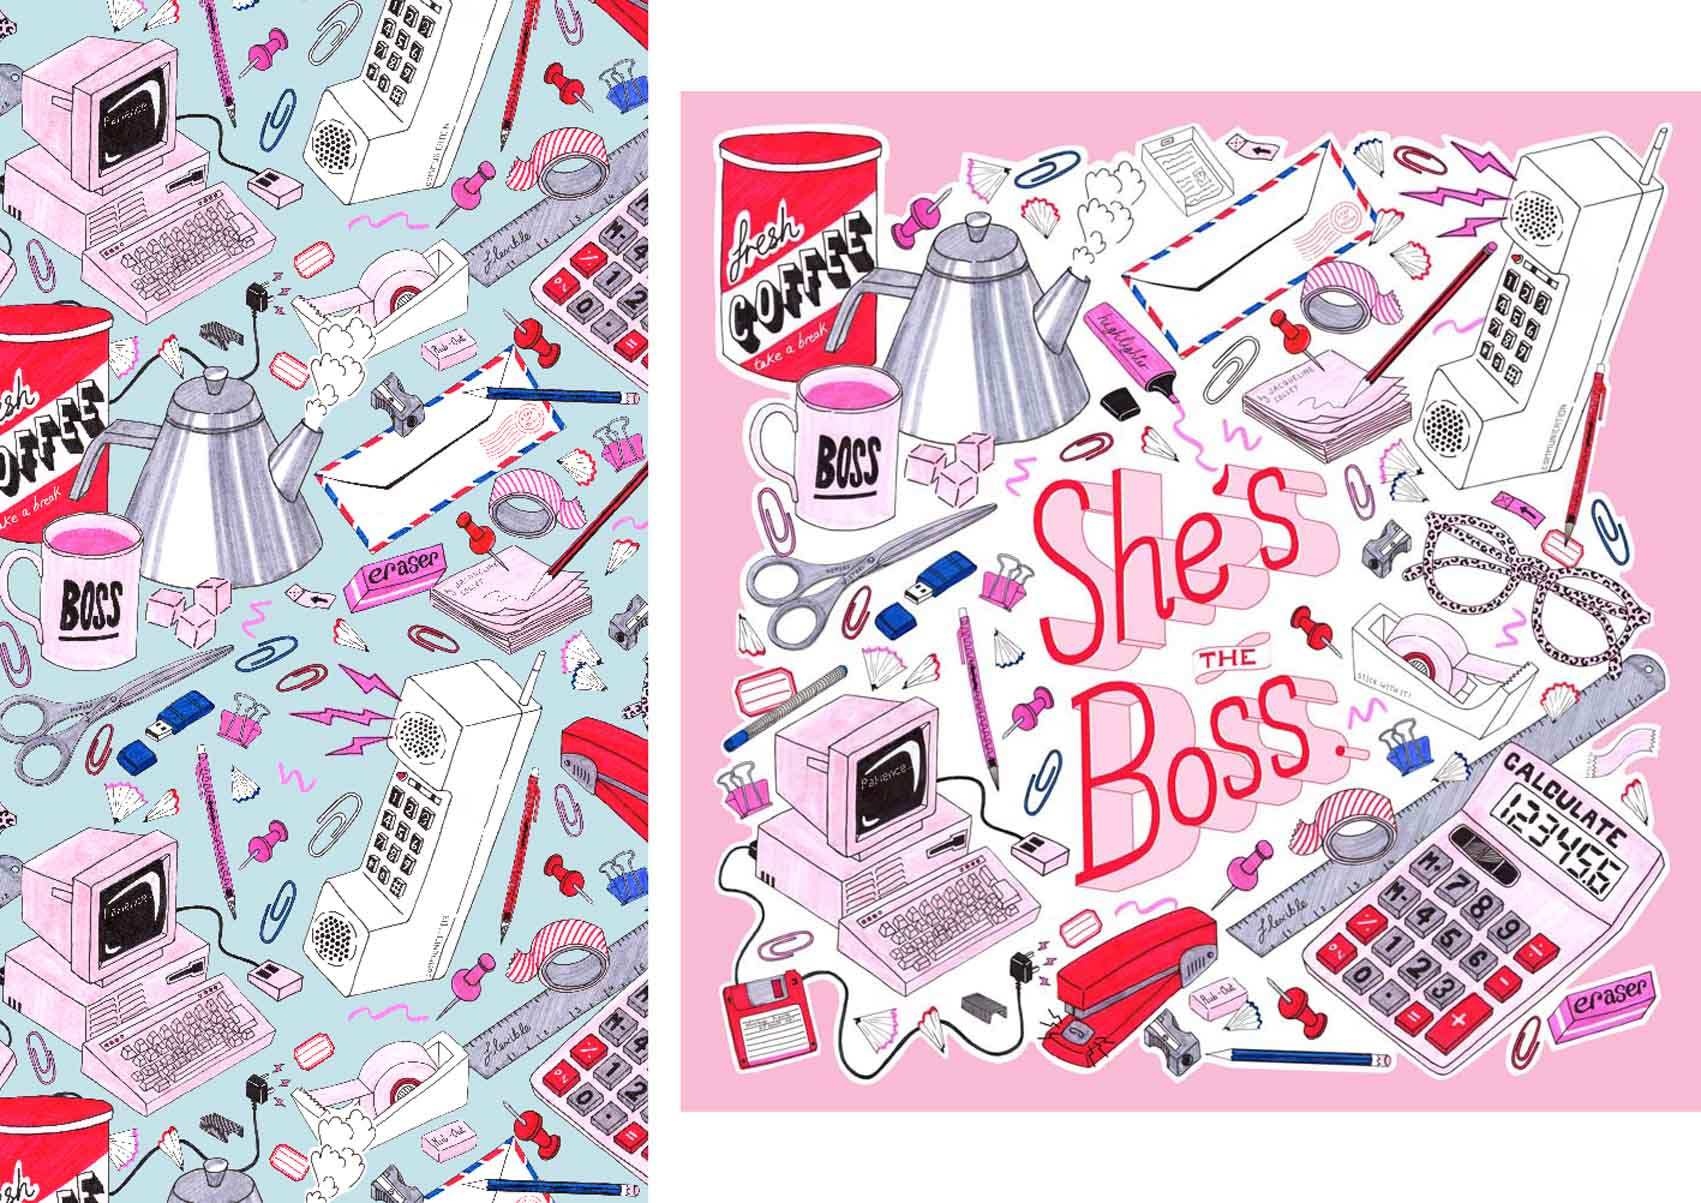 She's-The-Boss-Riso-Print-3.jpg